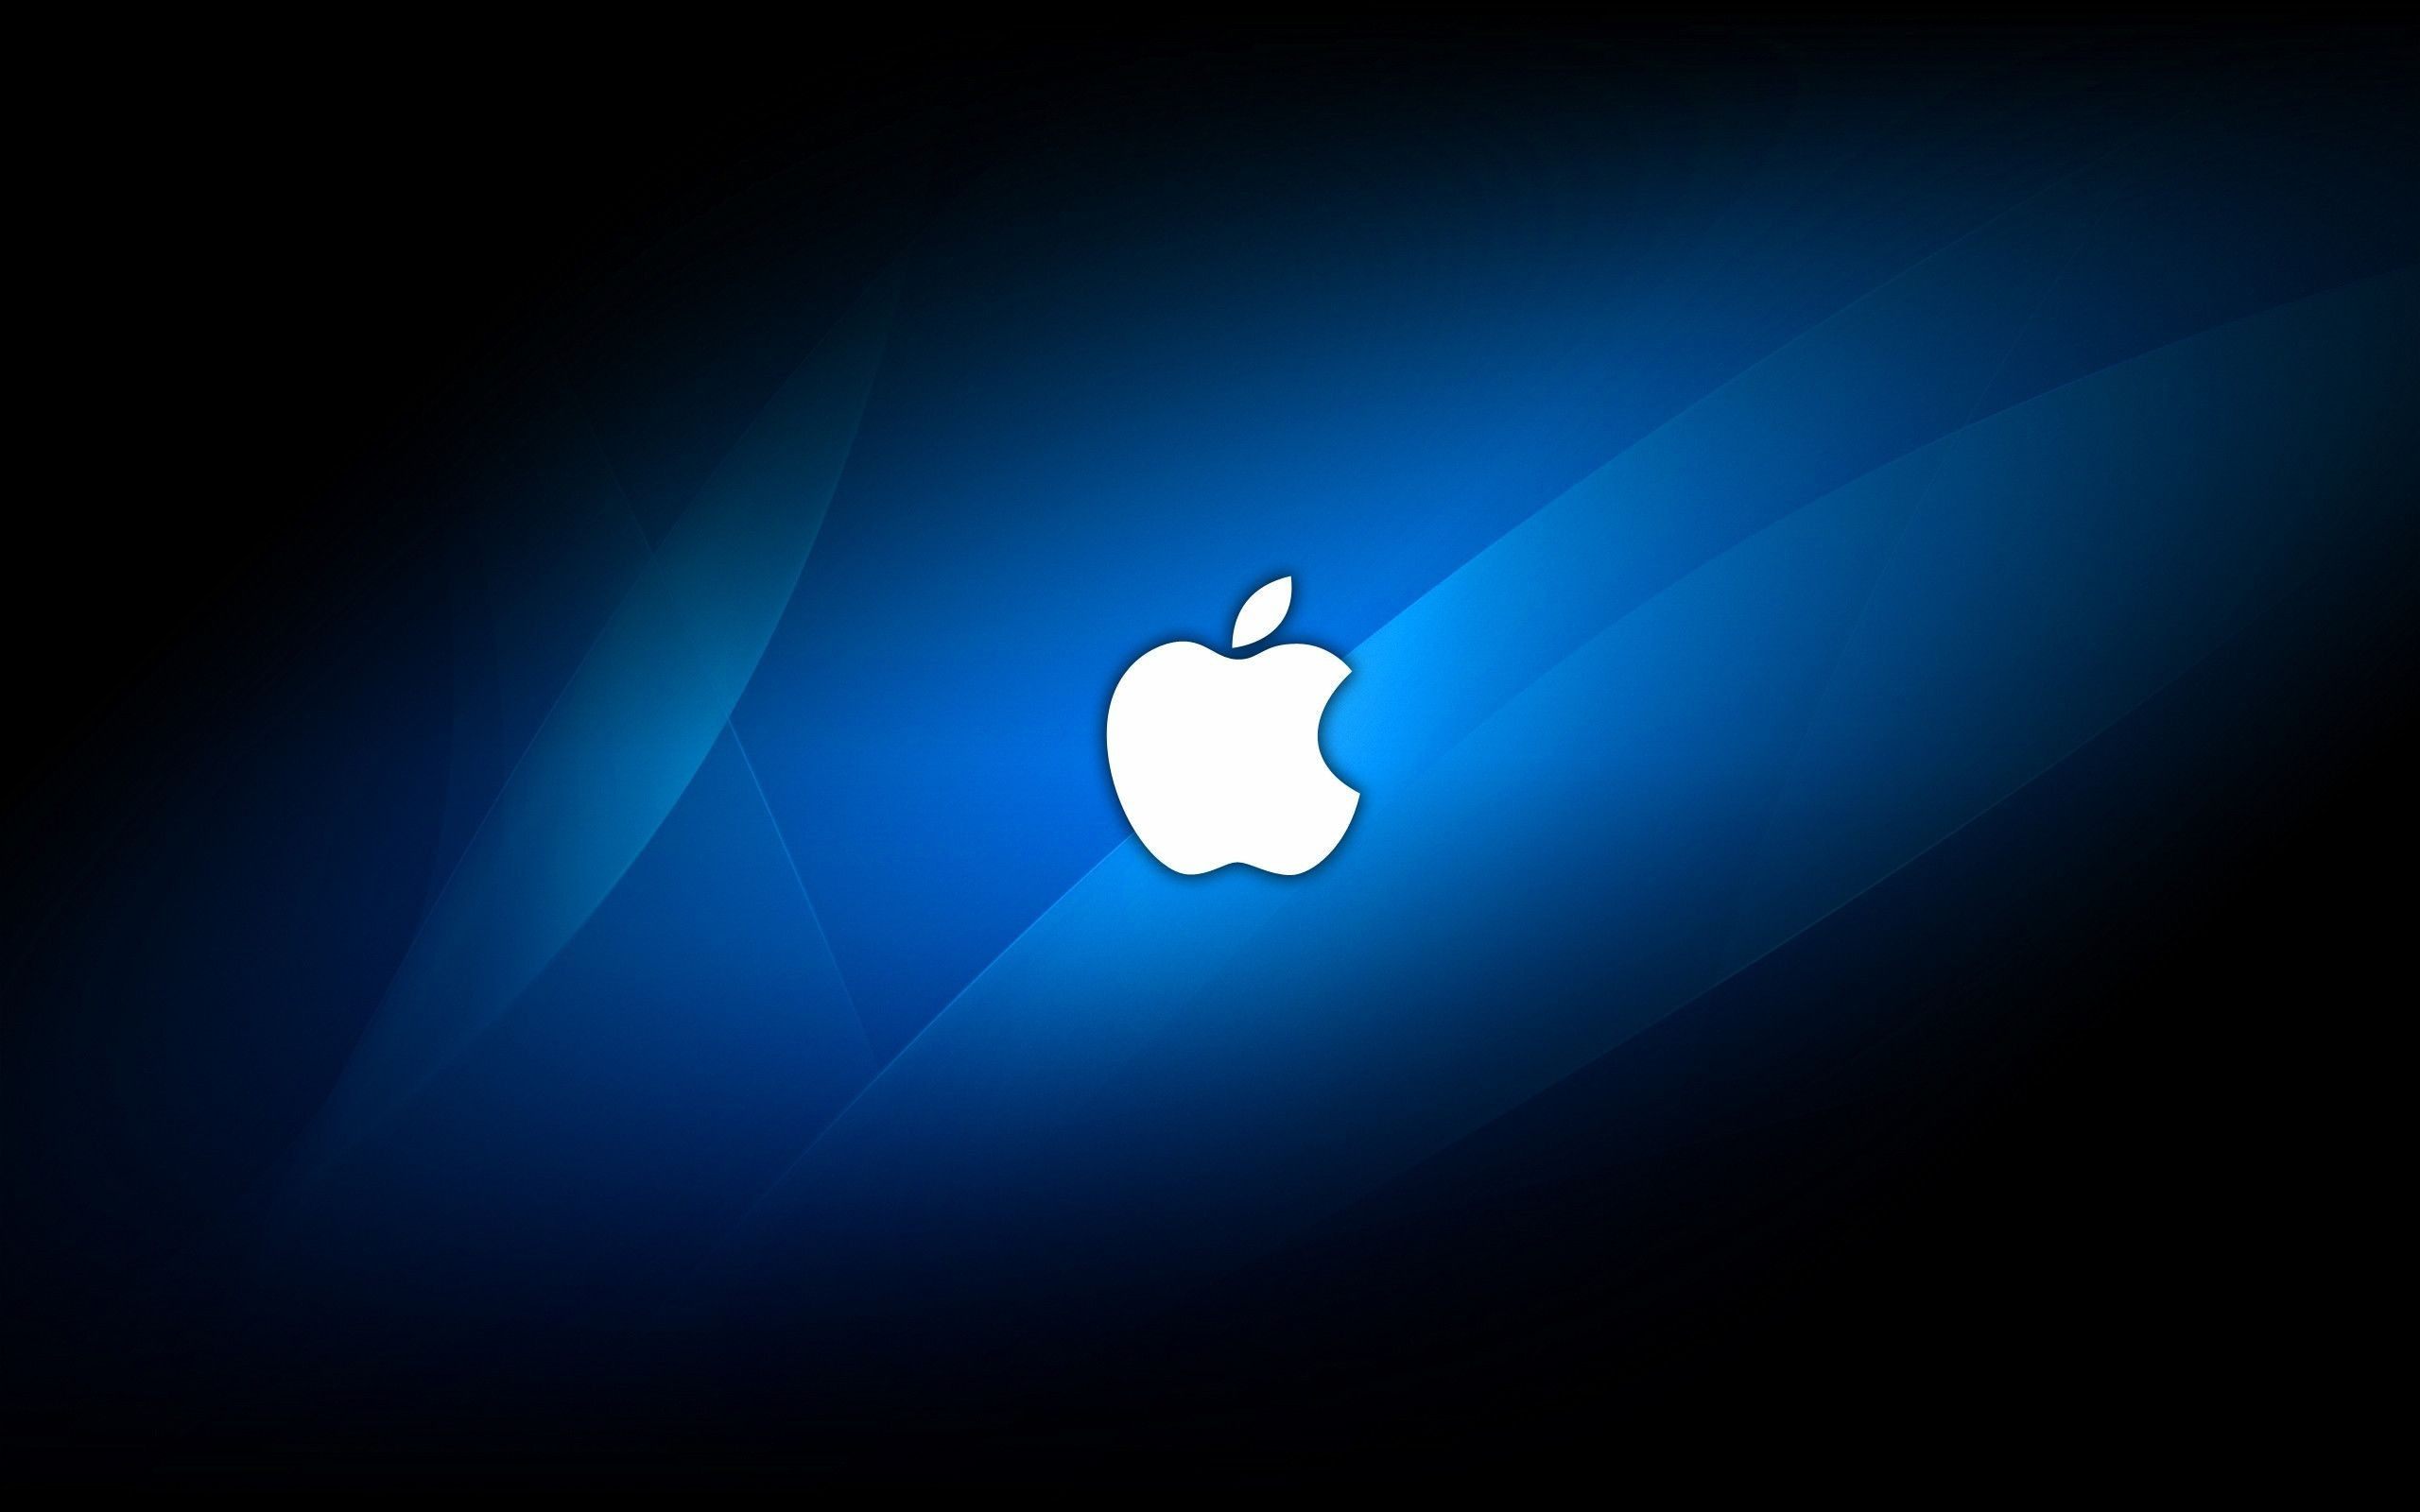 36 Apple Wallpapers Download Free Cool Hd Backgrounds For